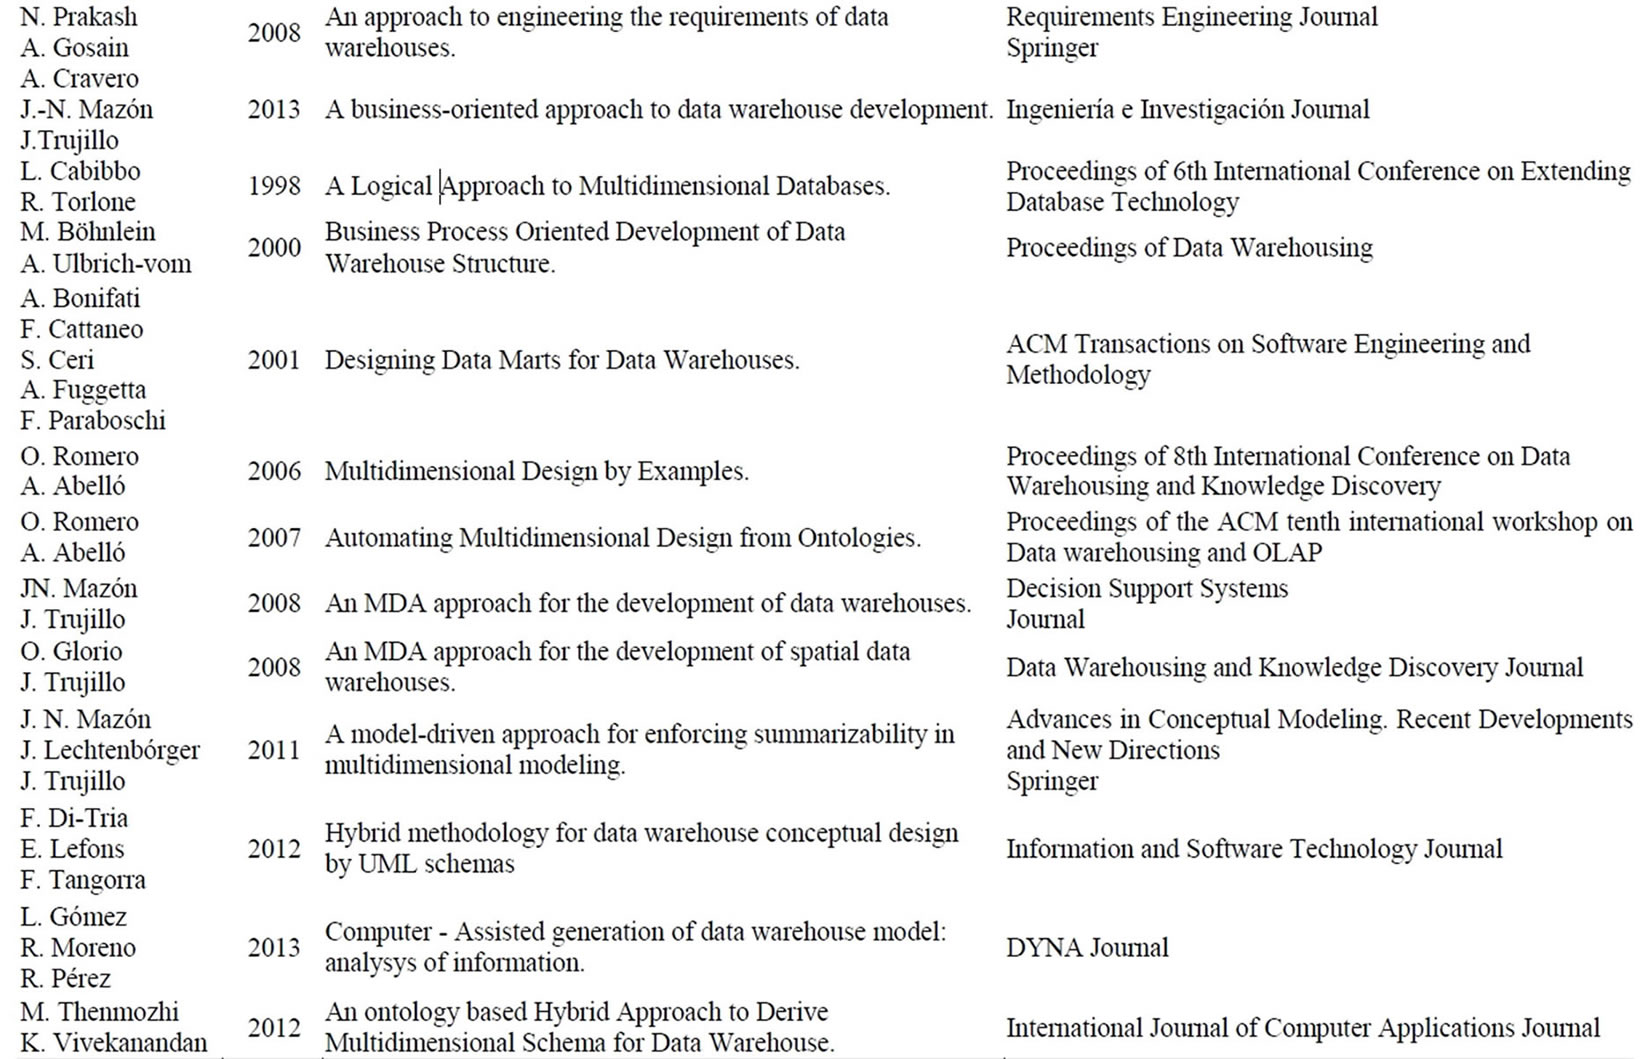 Multidimensional Design Paradigms for Data Warehouses: A Systematic